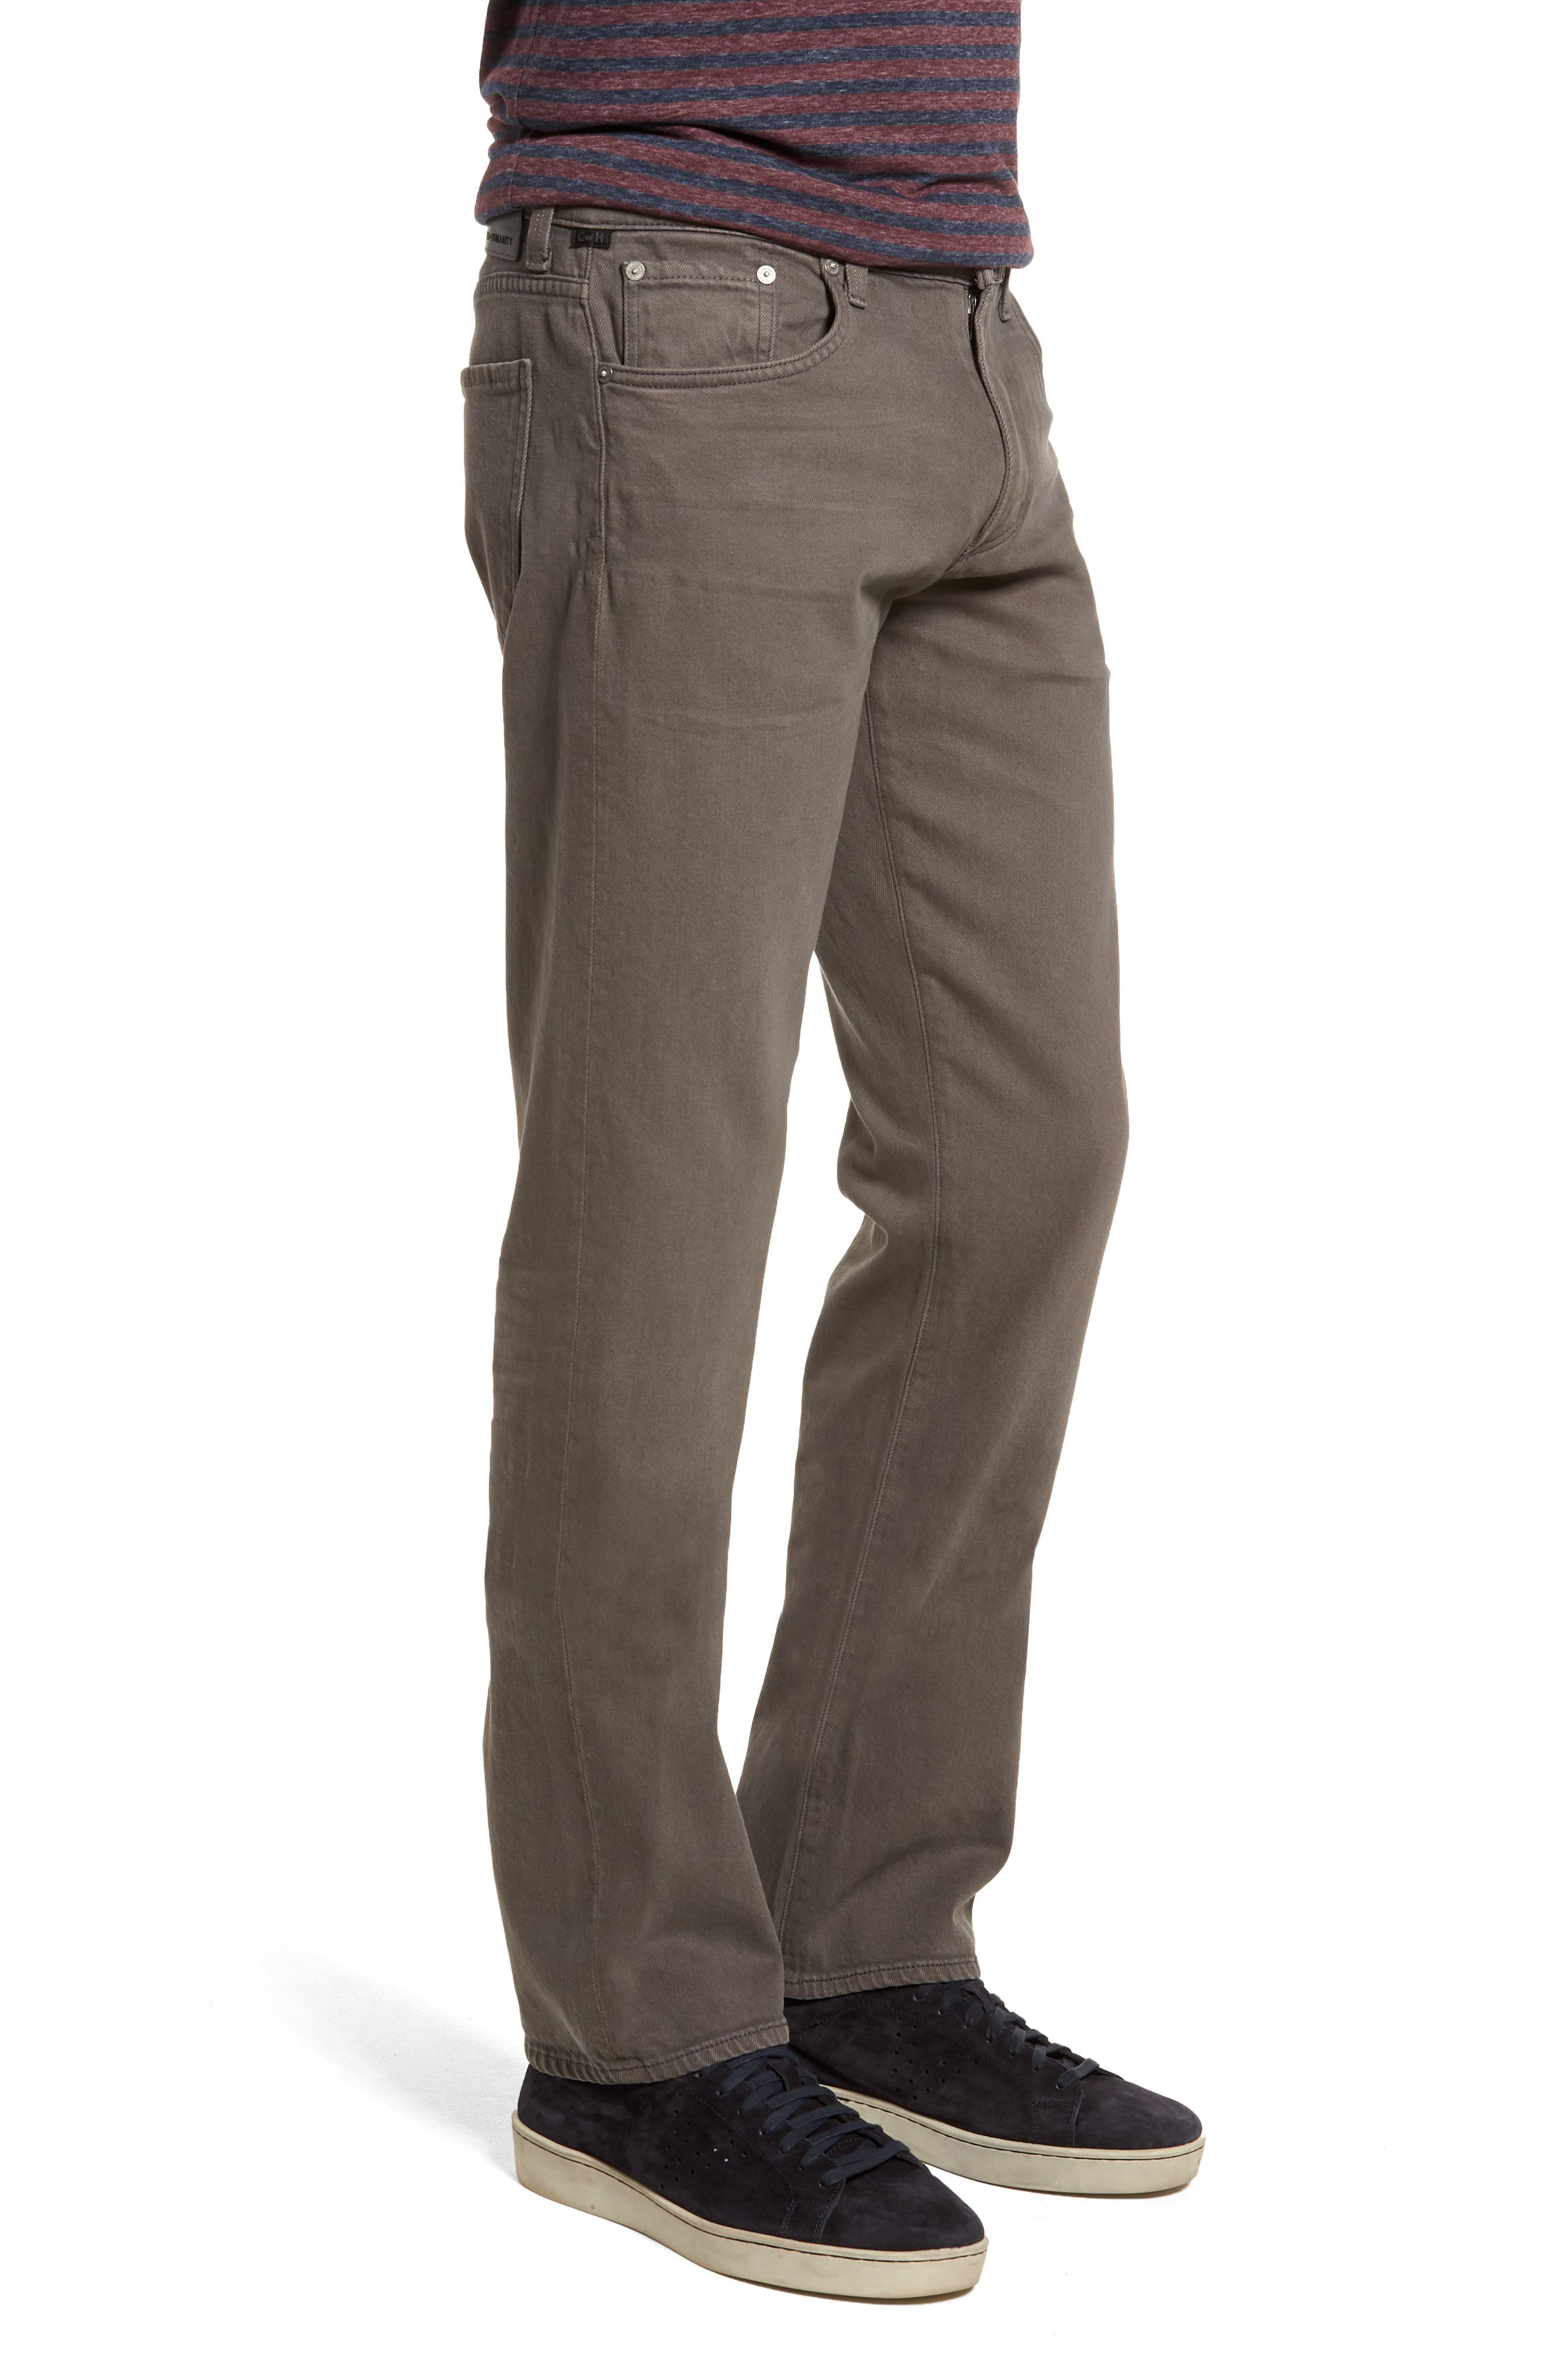 CITIZENS OF HUMANITY,                             Core Slim Fit Jeans,                             Alternate thumbnail 3, color,                             FALLBROOK